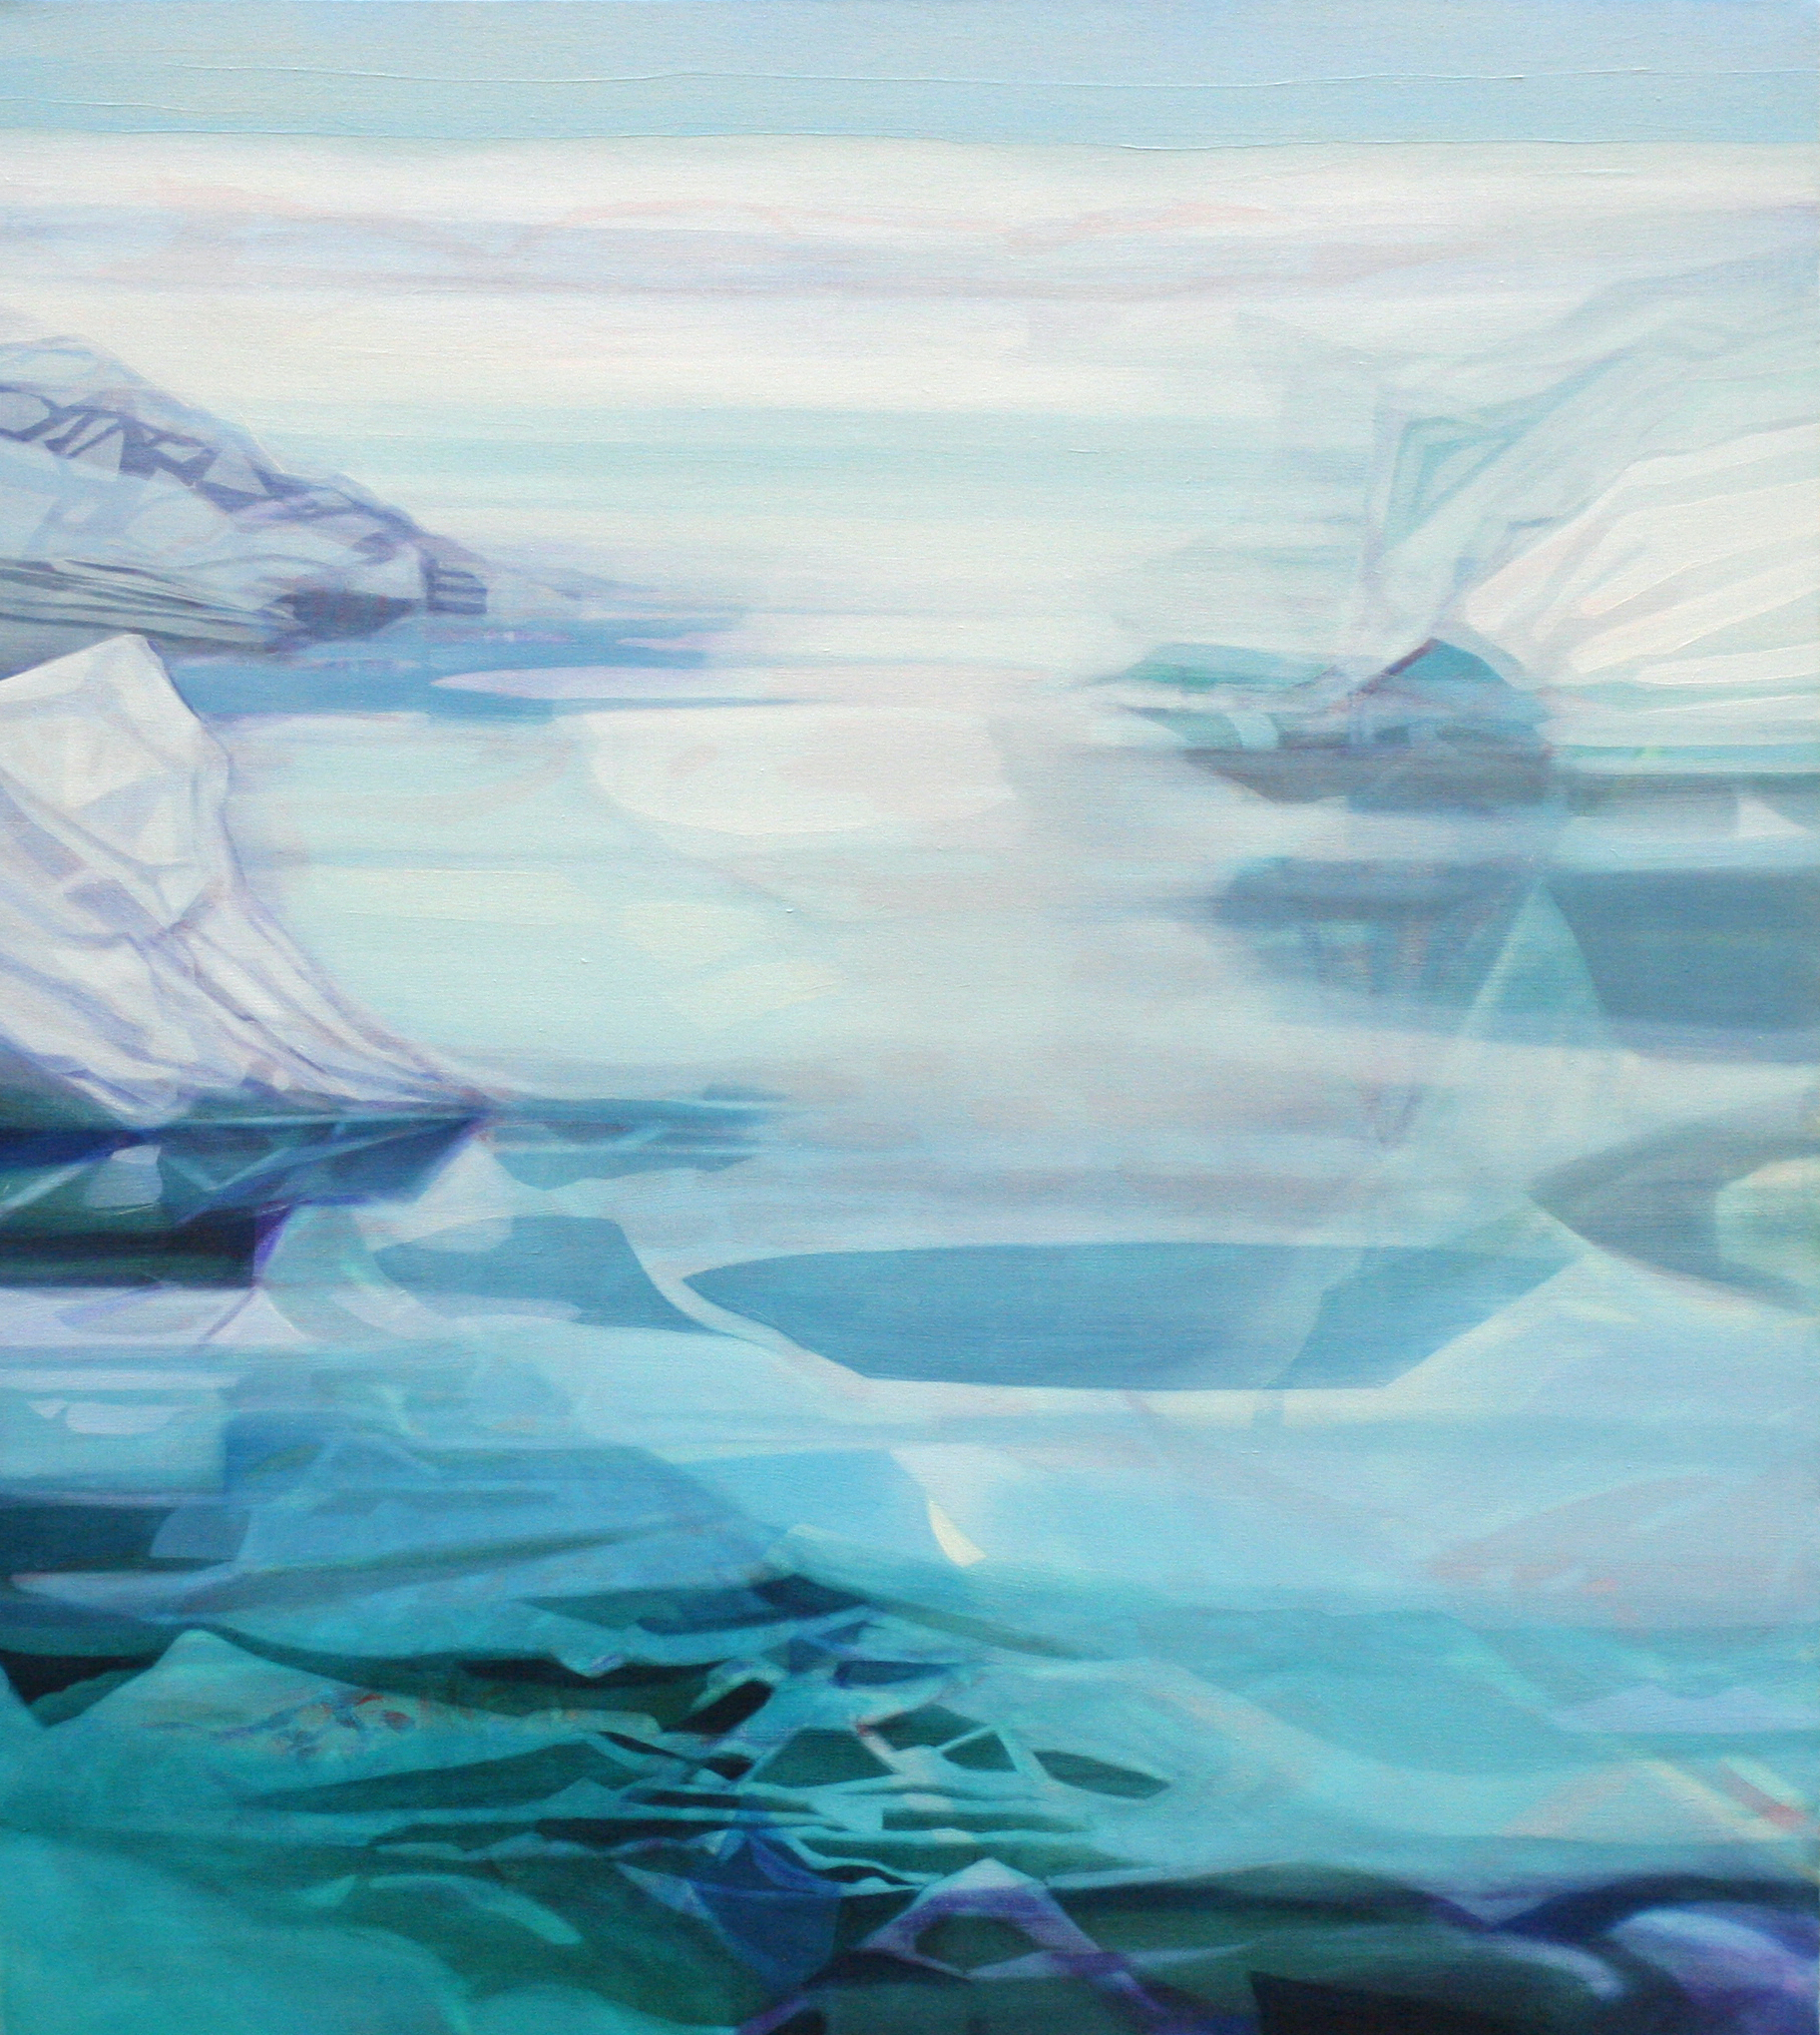 12_SERIO_Jökullinn,Time's Witness_oil on canvas_50x45__52x47 framed_4500.jpg